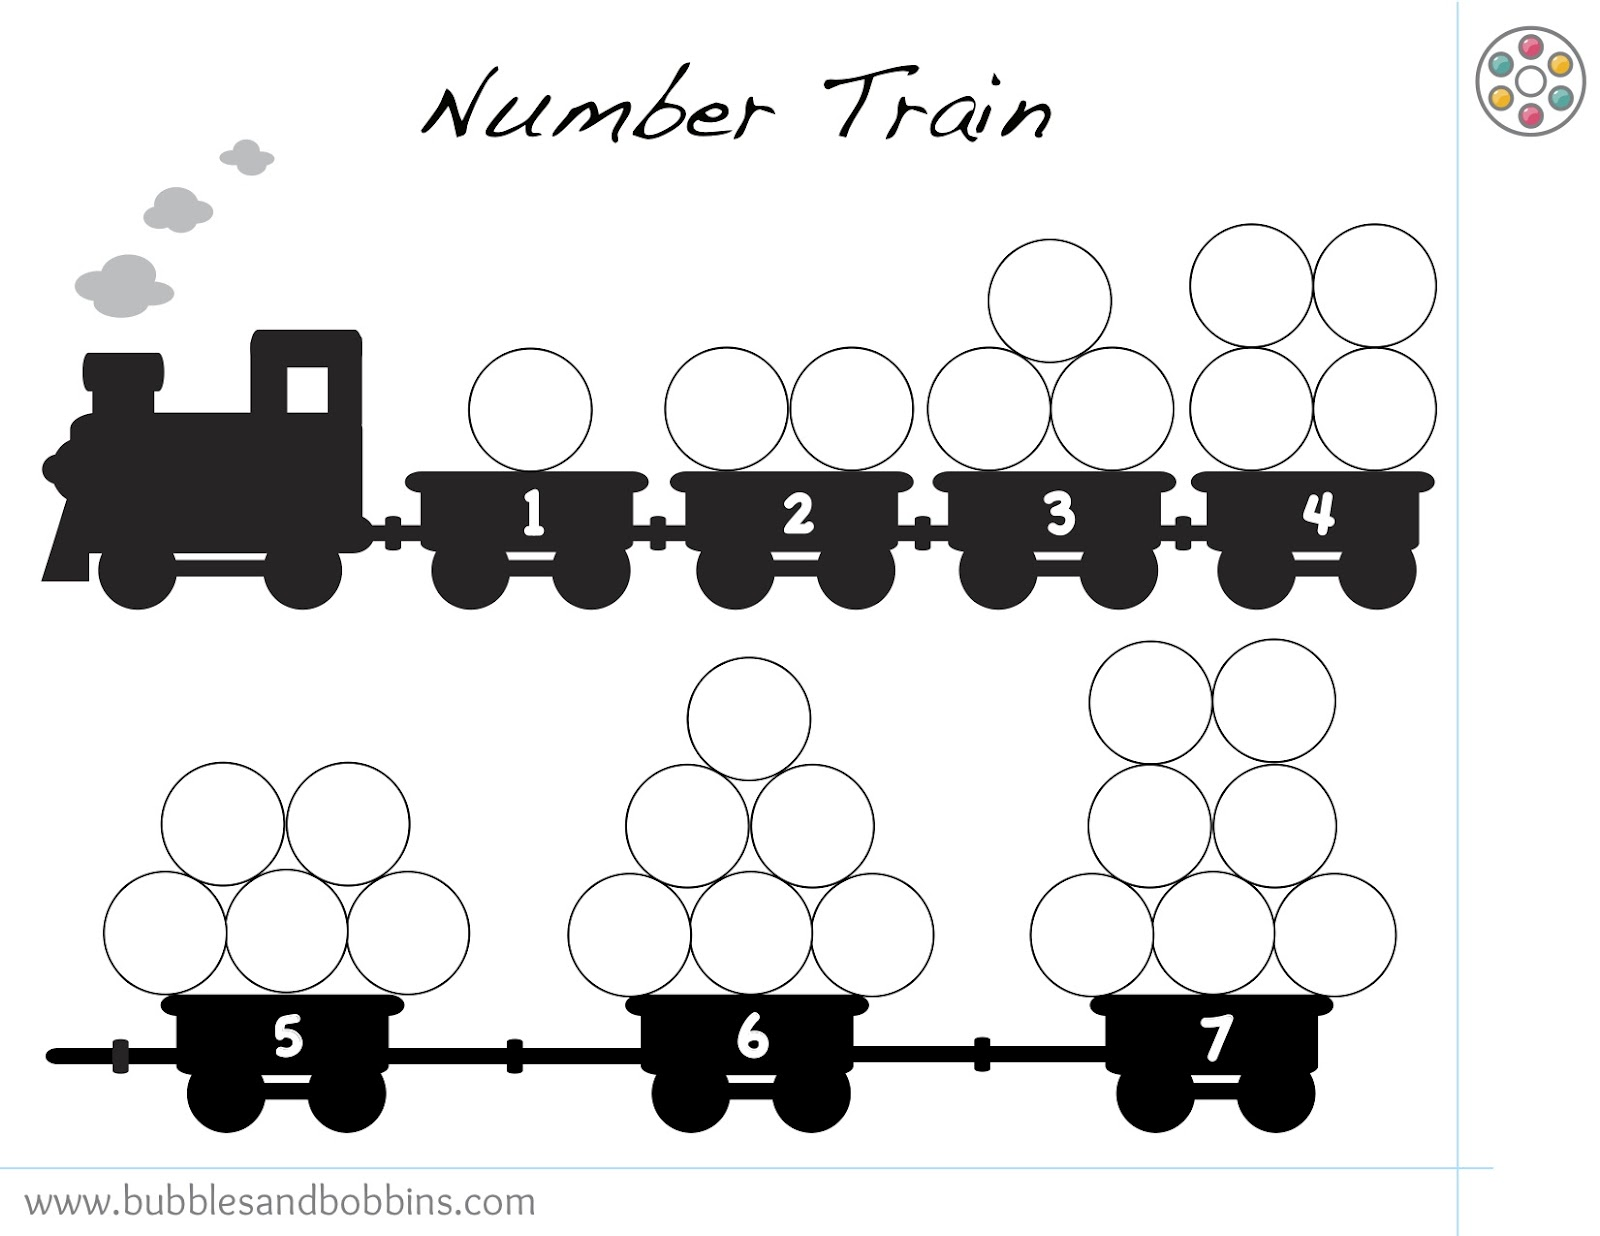 Number Train Pompom Template